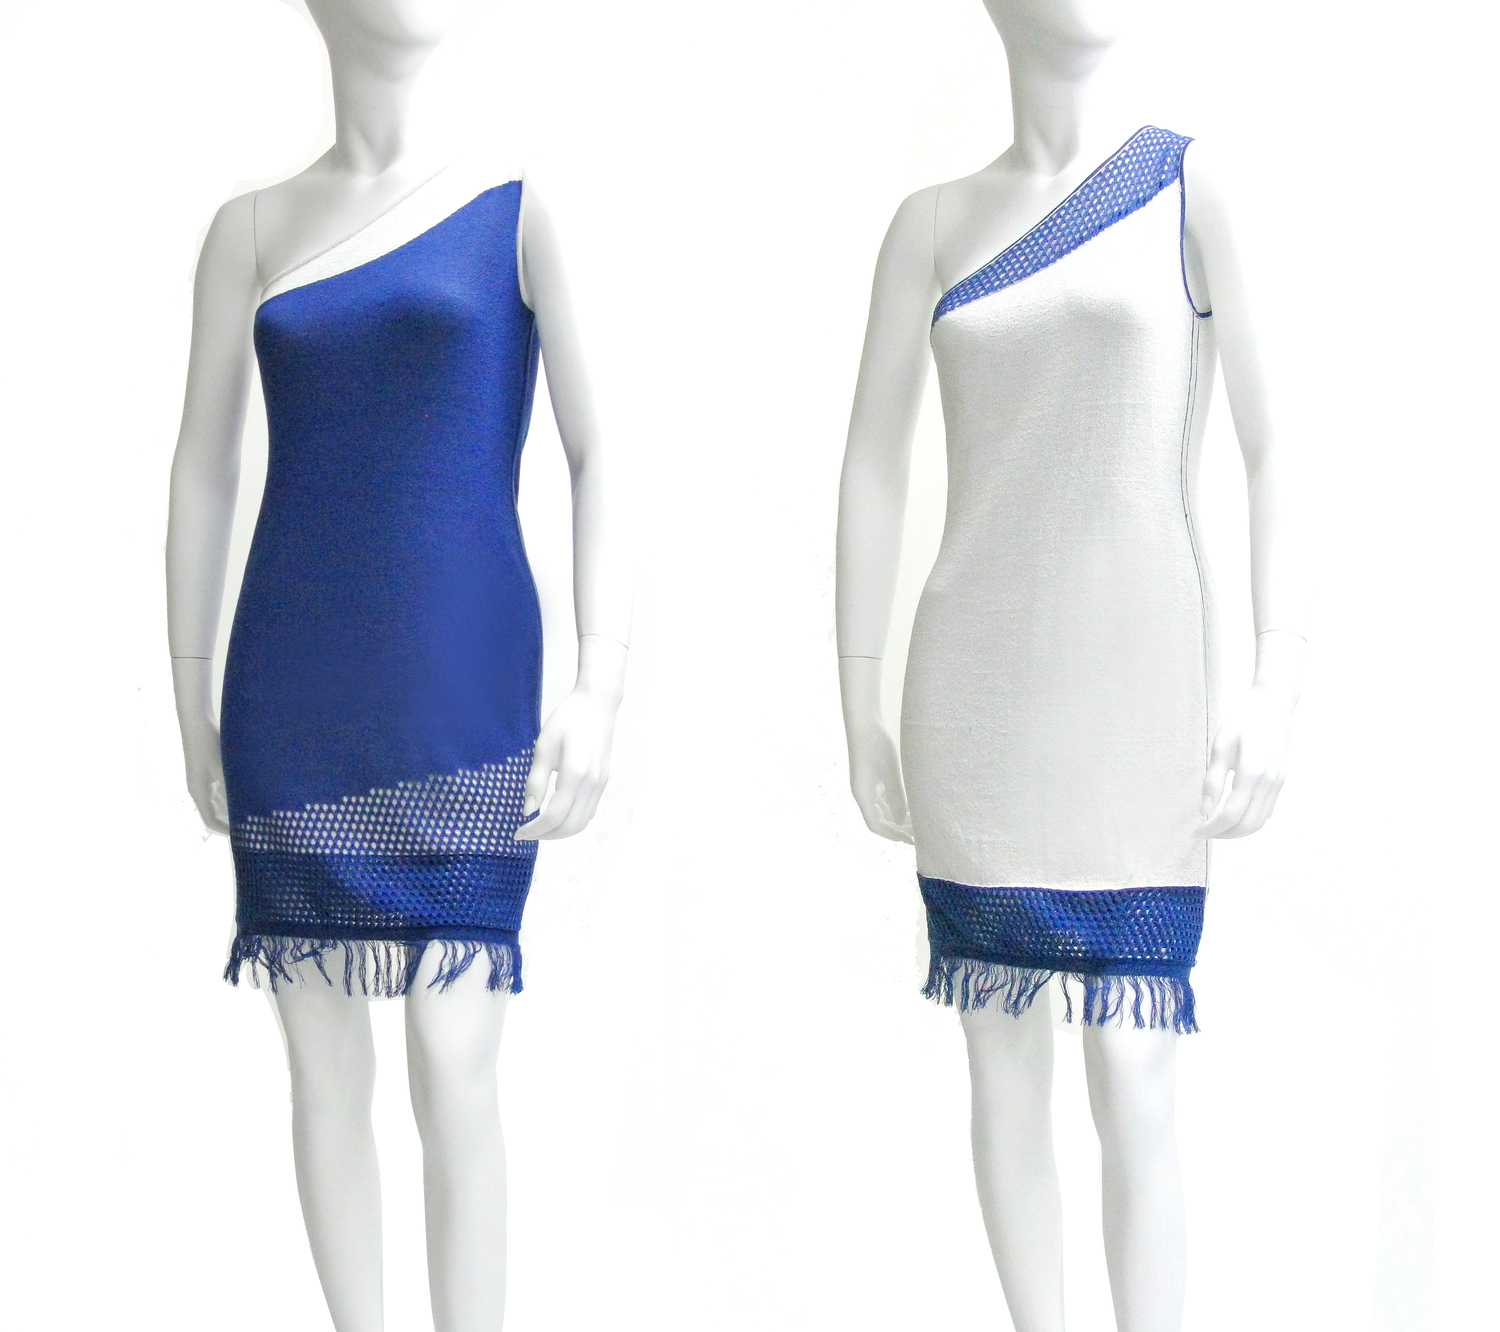 The MADELINE reversible dress from Jia Collection